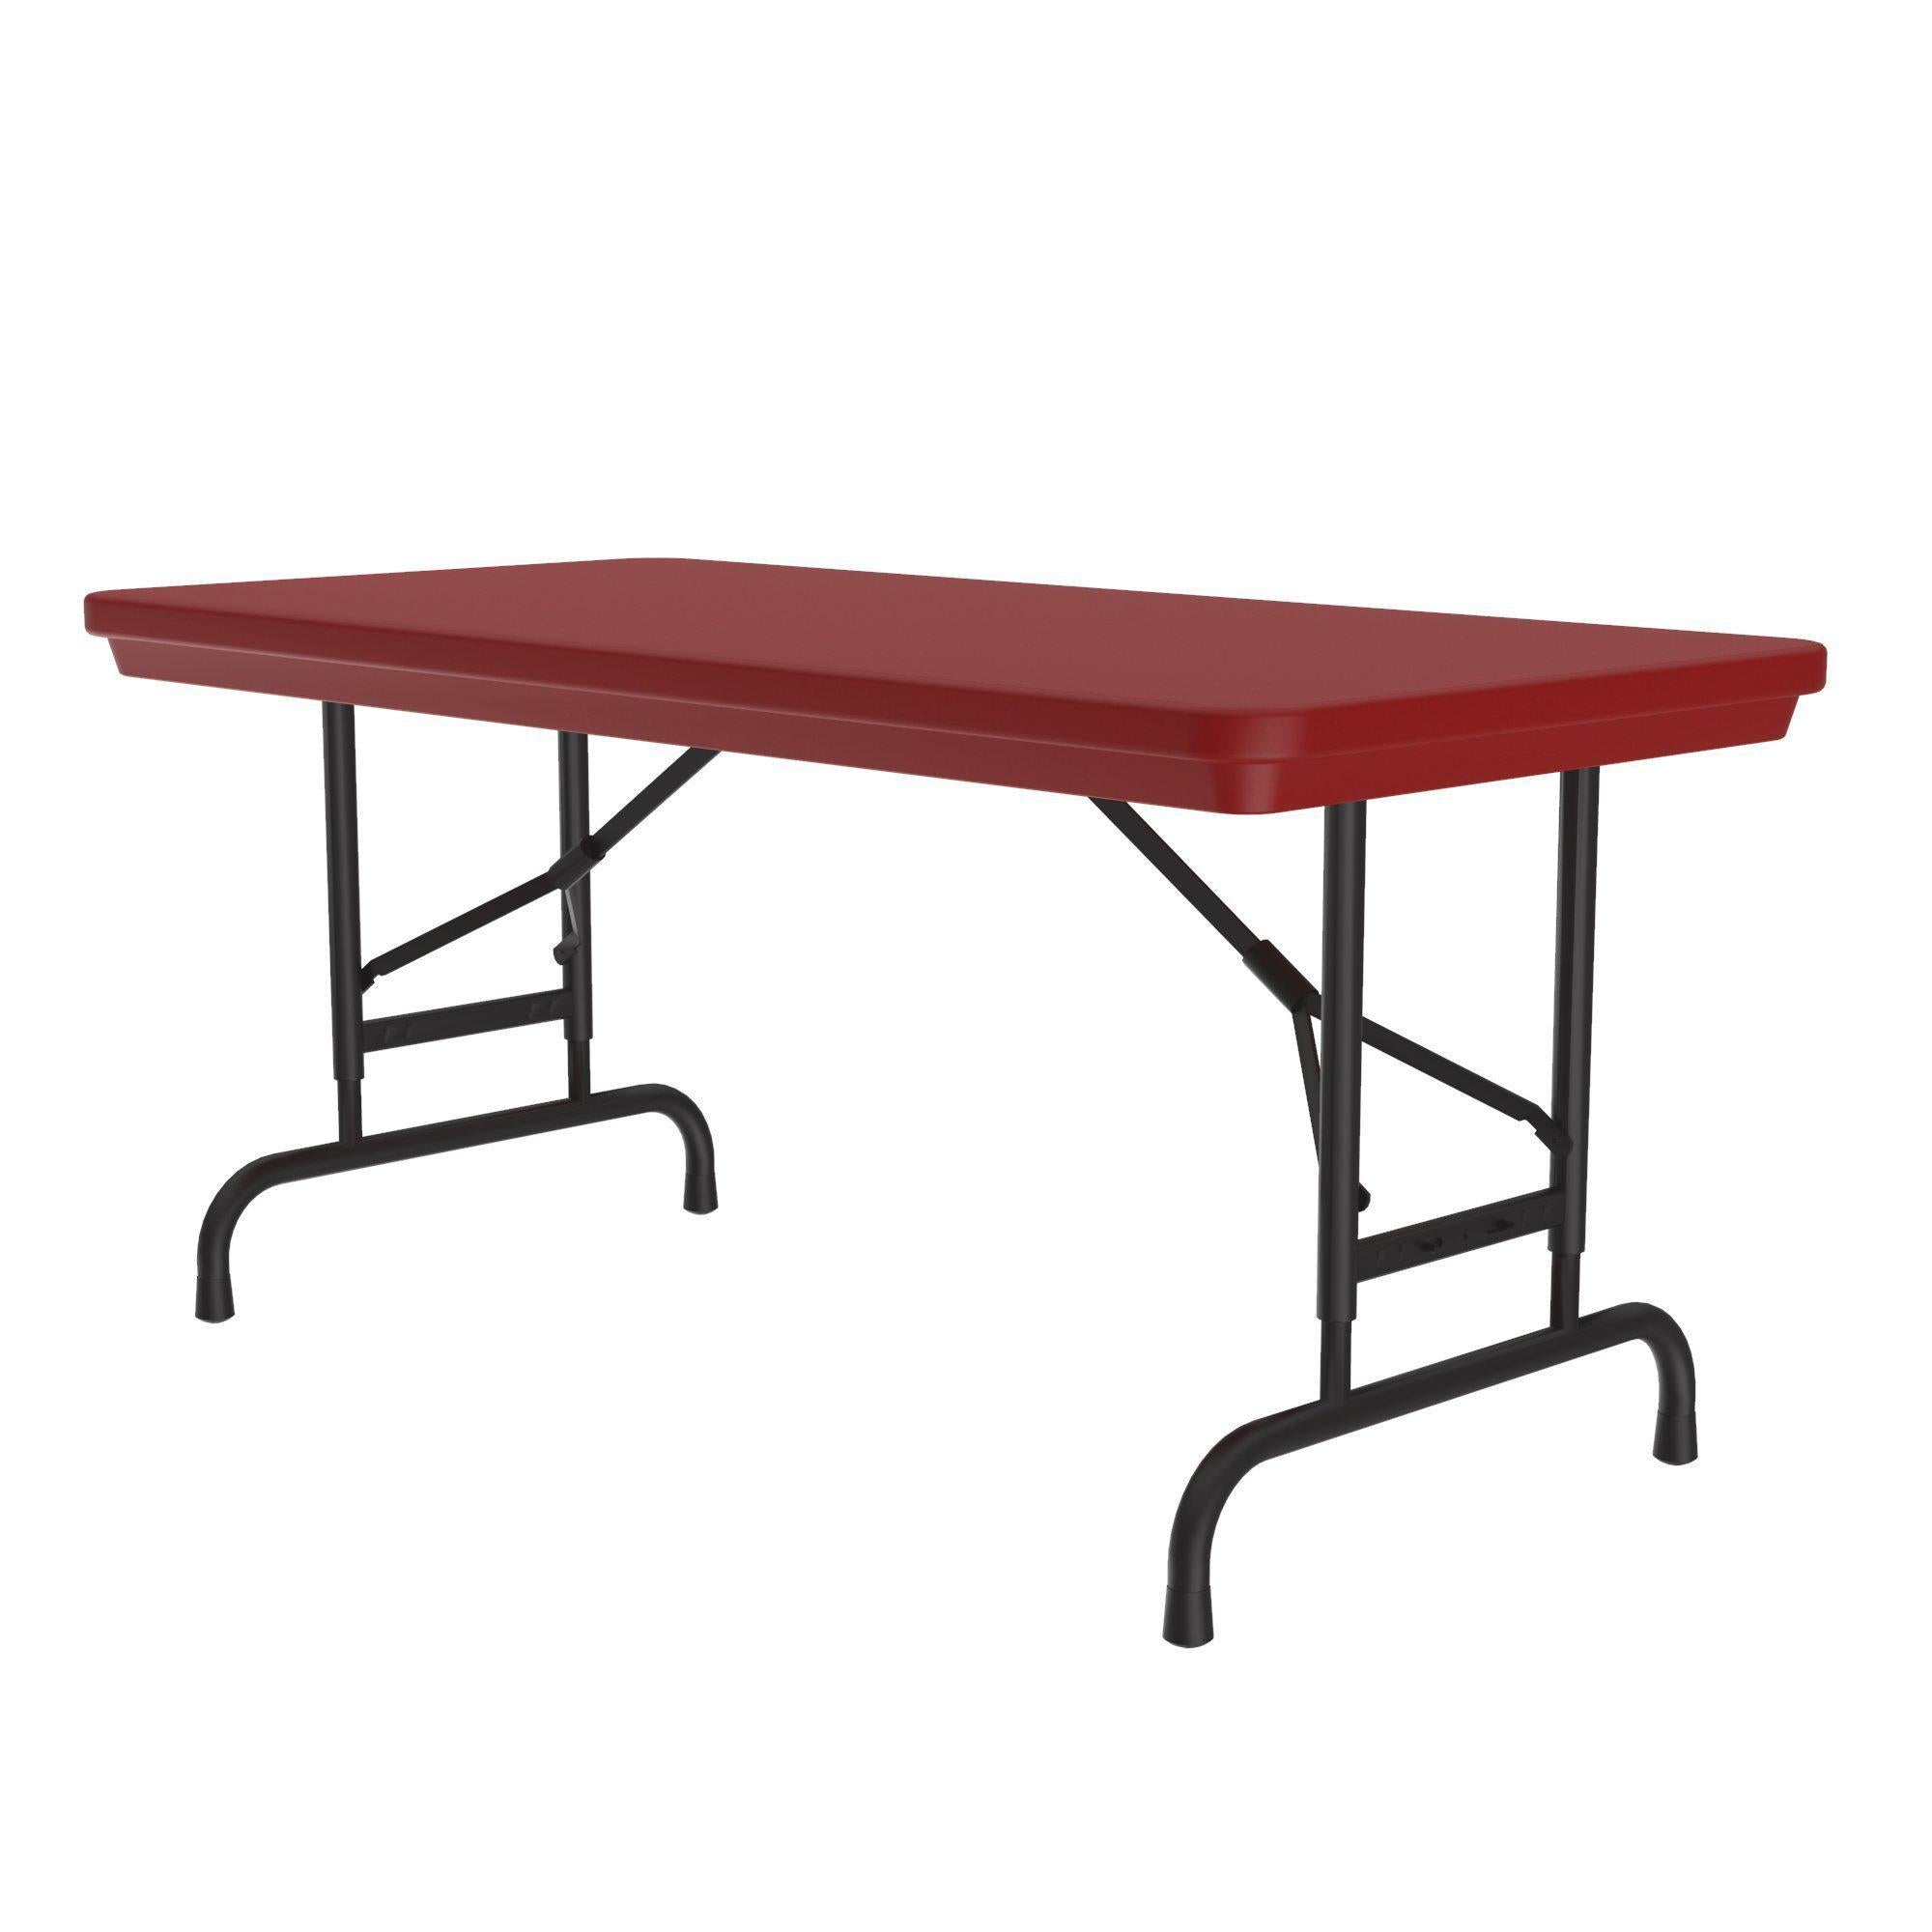 Heavy Duty Commercial Use Blow Molded Folding Table, Primary Colors, Adjustable Height, 24 x 48